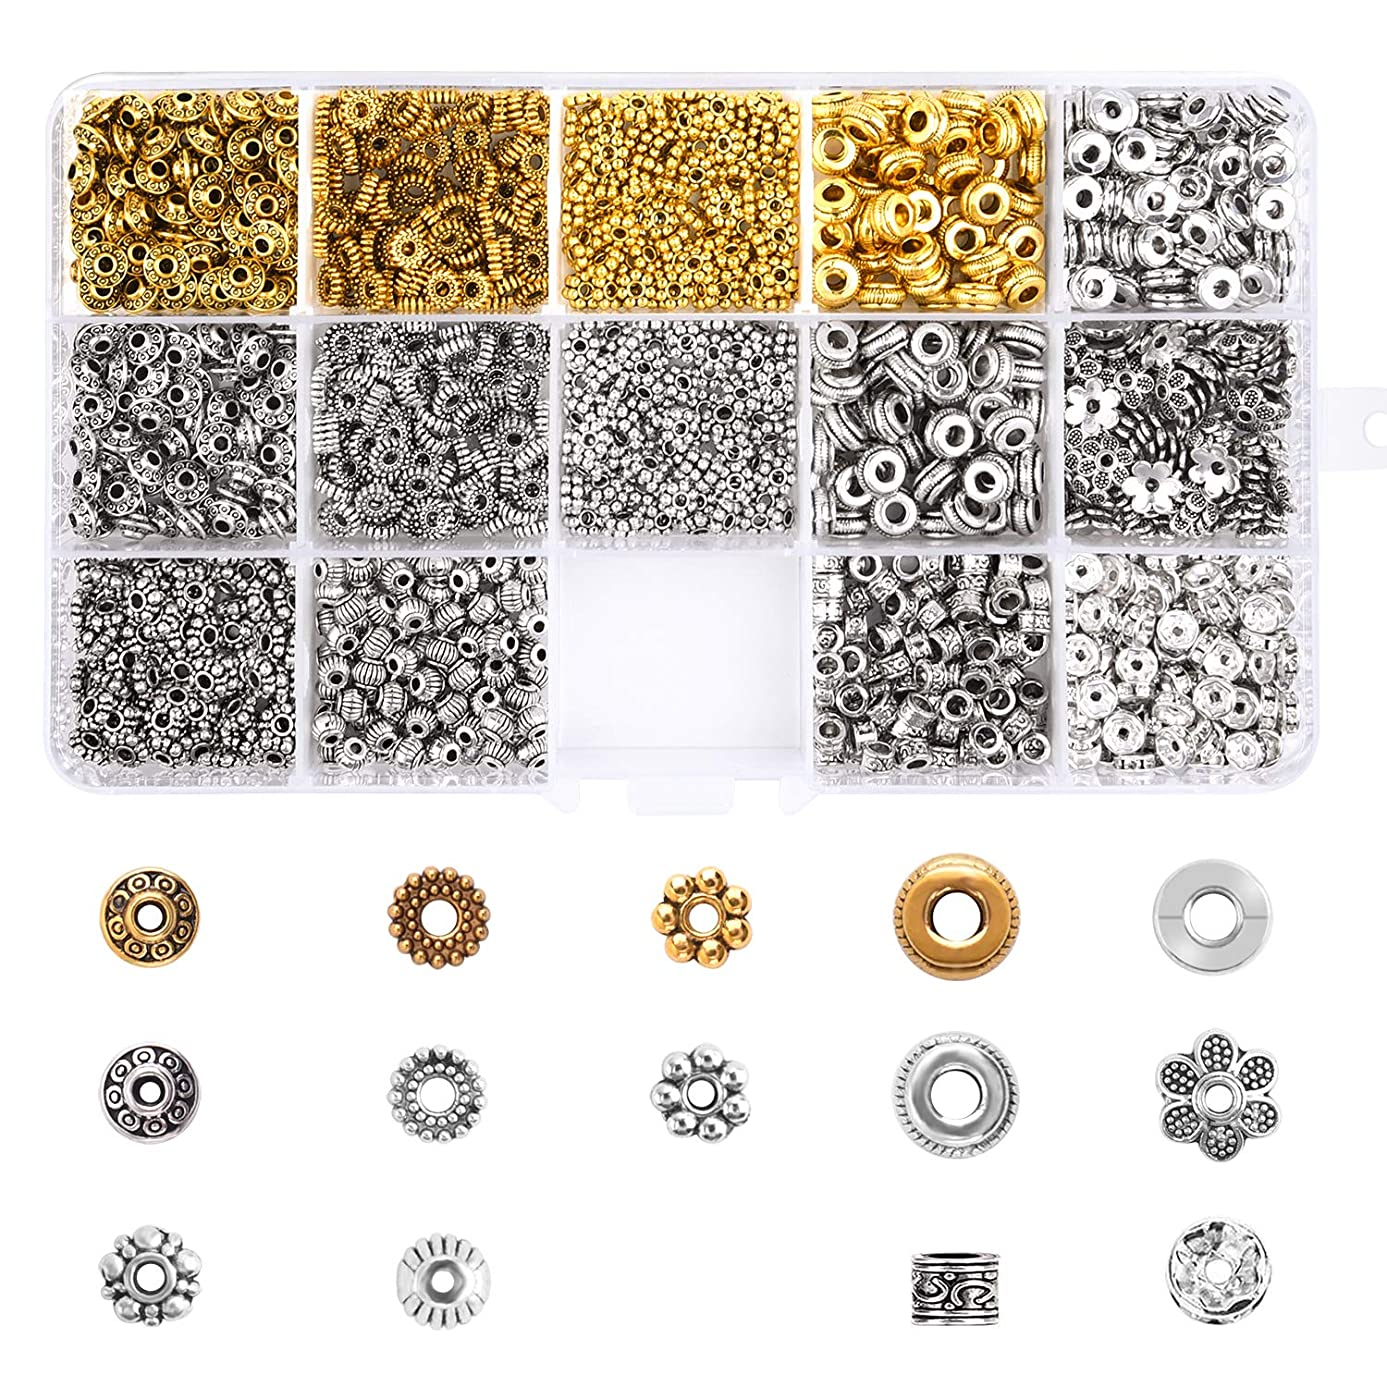 TUPARKA 700 Pcs Metal Spacer Beads for Charm Bracelet Necklace DIY Jewelry Accessories Making, Jewelry findings Accessories (14 Style)